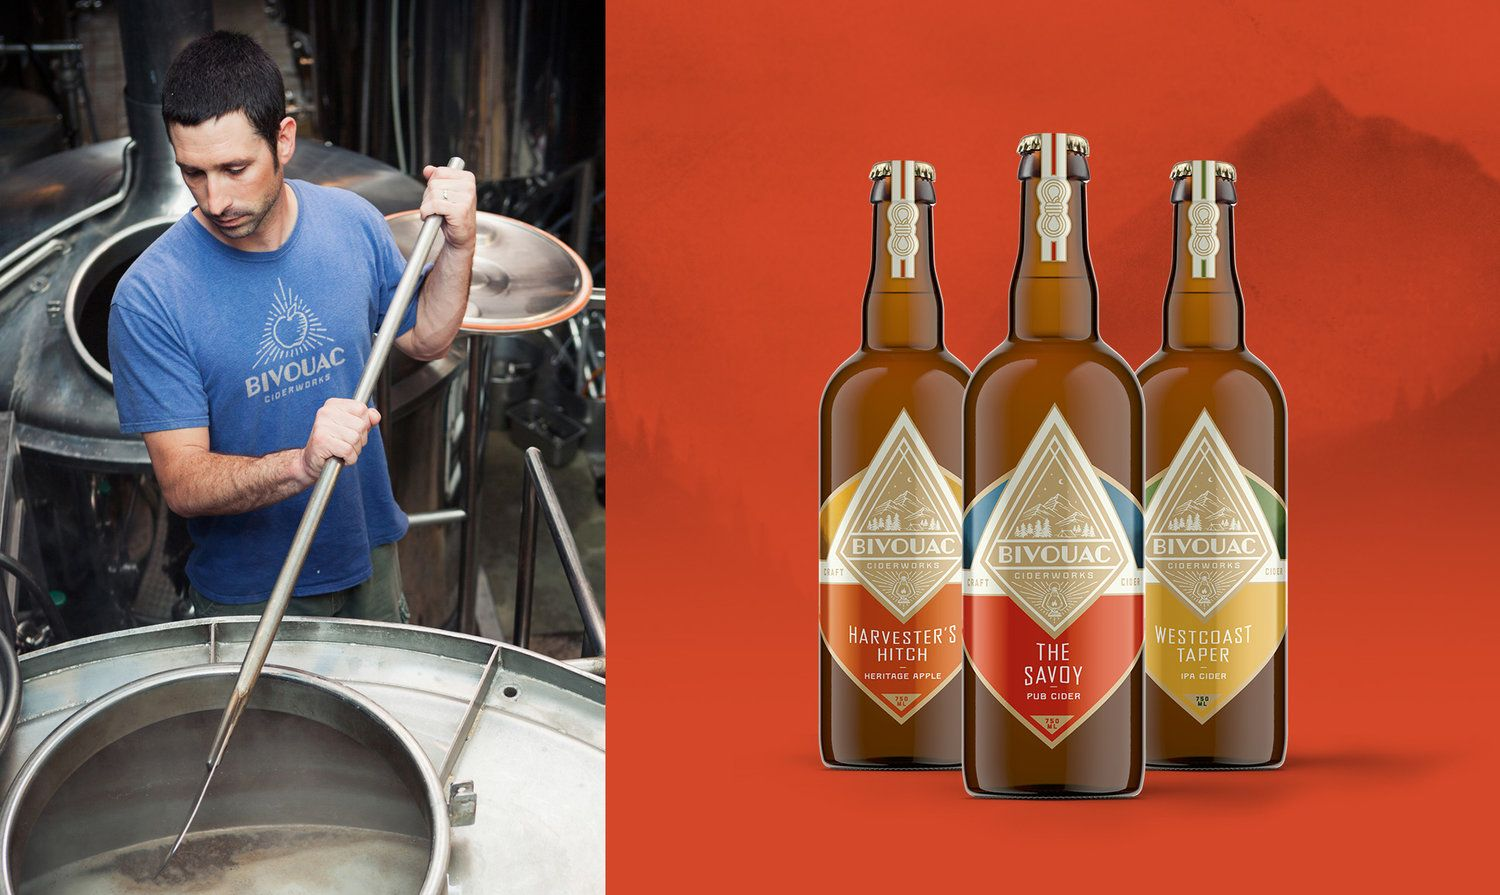 Bivouac Ciderworks Comes With A Clean Look That Makes This Product A Standout Craft Cider Tap Room Cider